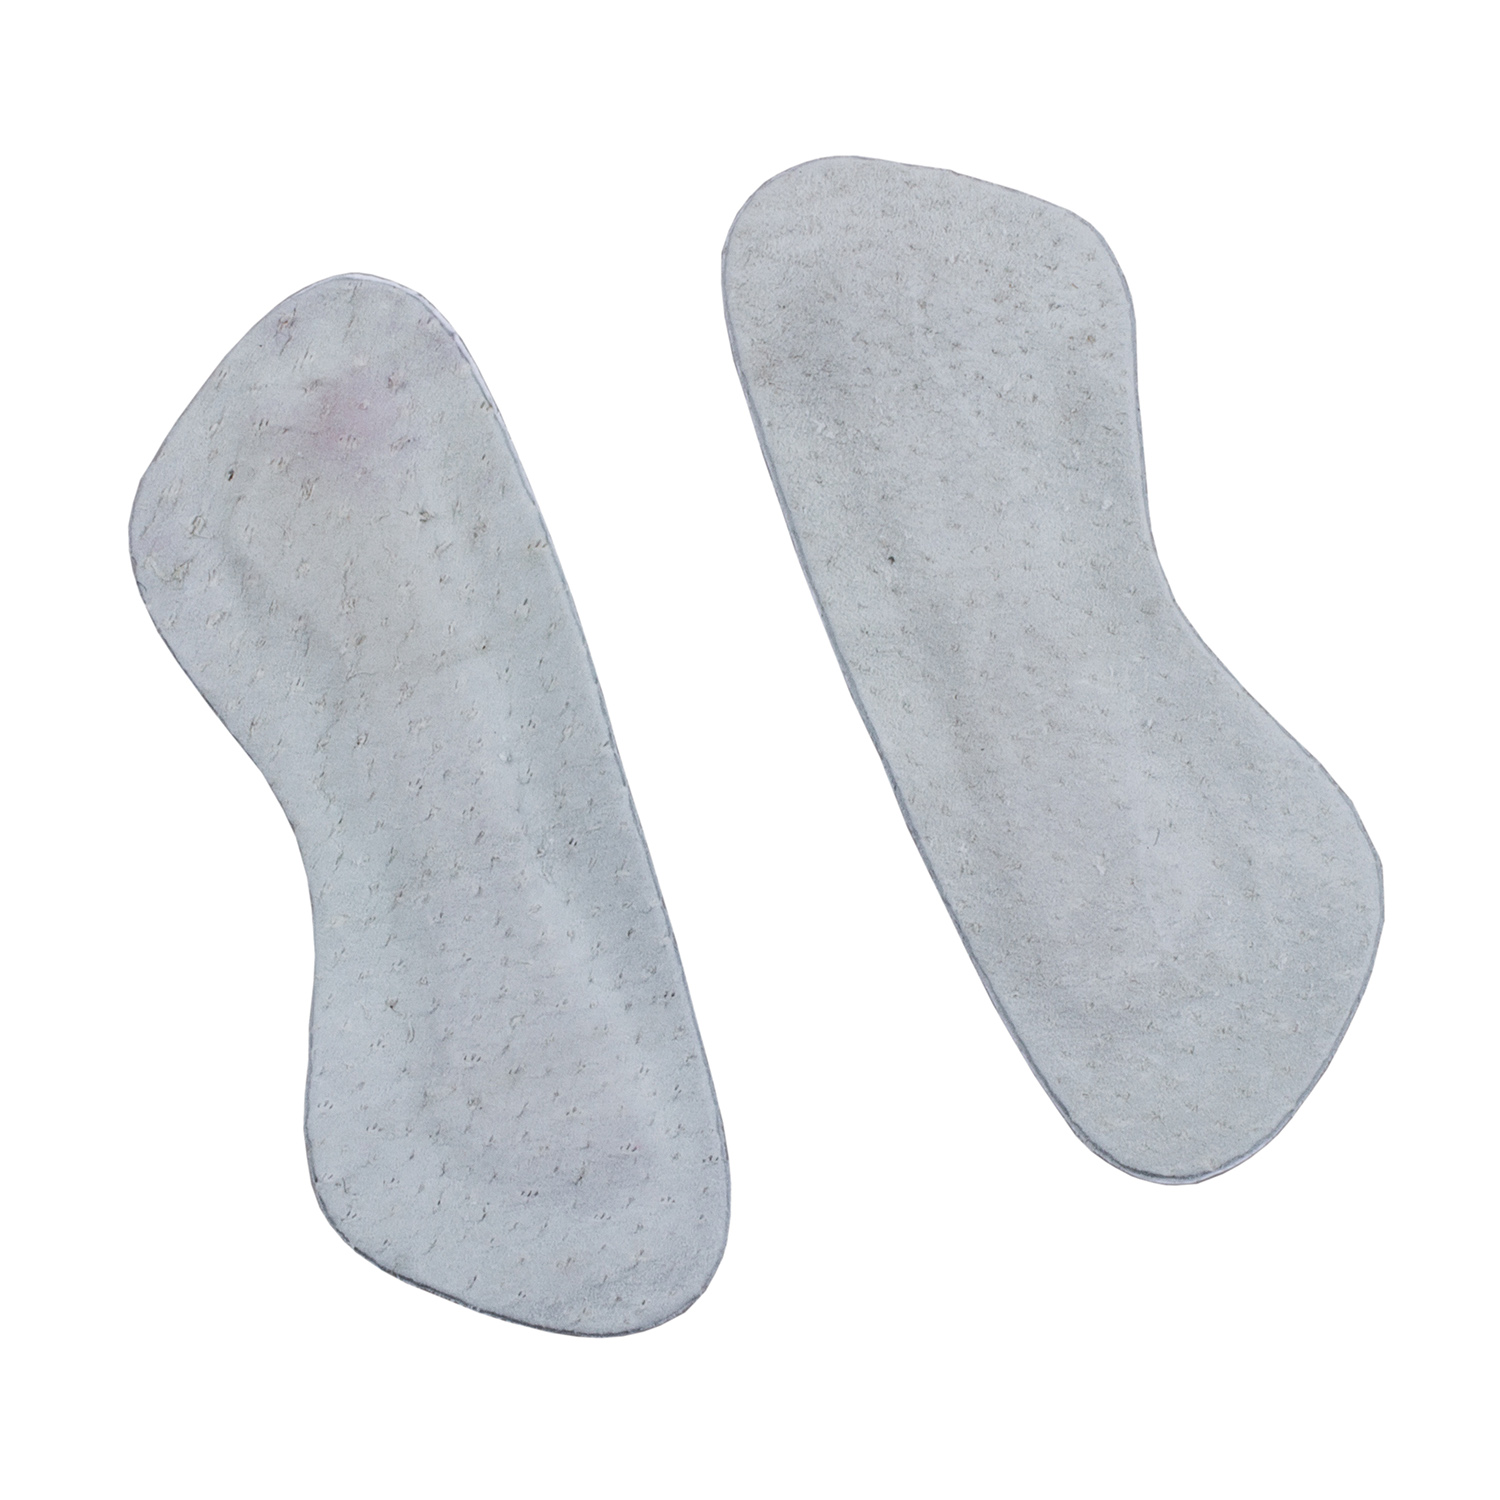 1 Pair Inserts Insoles Pads Cushion Liner Protector Foot Care For Women Inserts Sticky Shoe Back Heel1 Pair Inserts Insoles Pads Cushion Liner Protector Foot Care For Women Inserts Sticky Shoe Back Heel